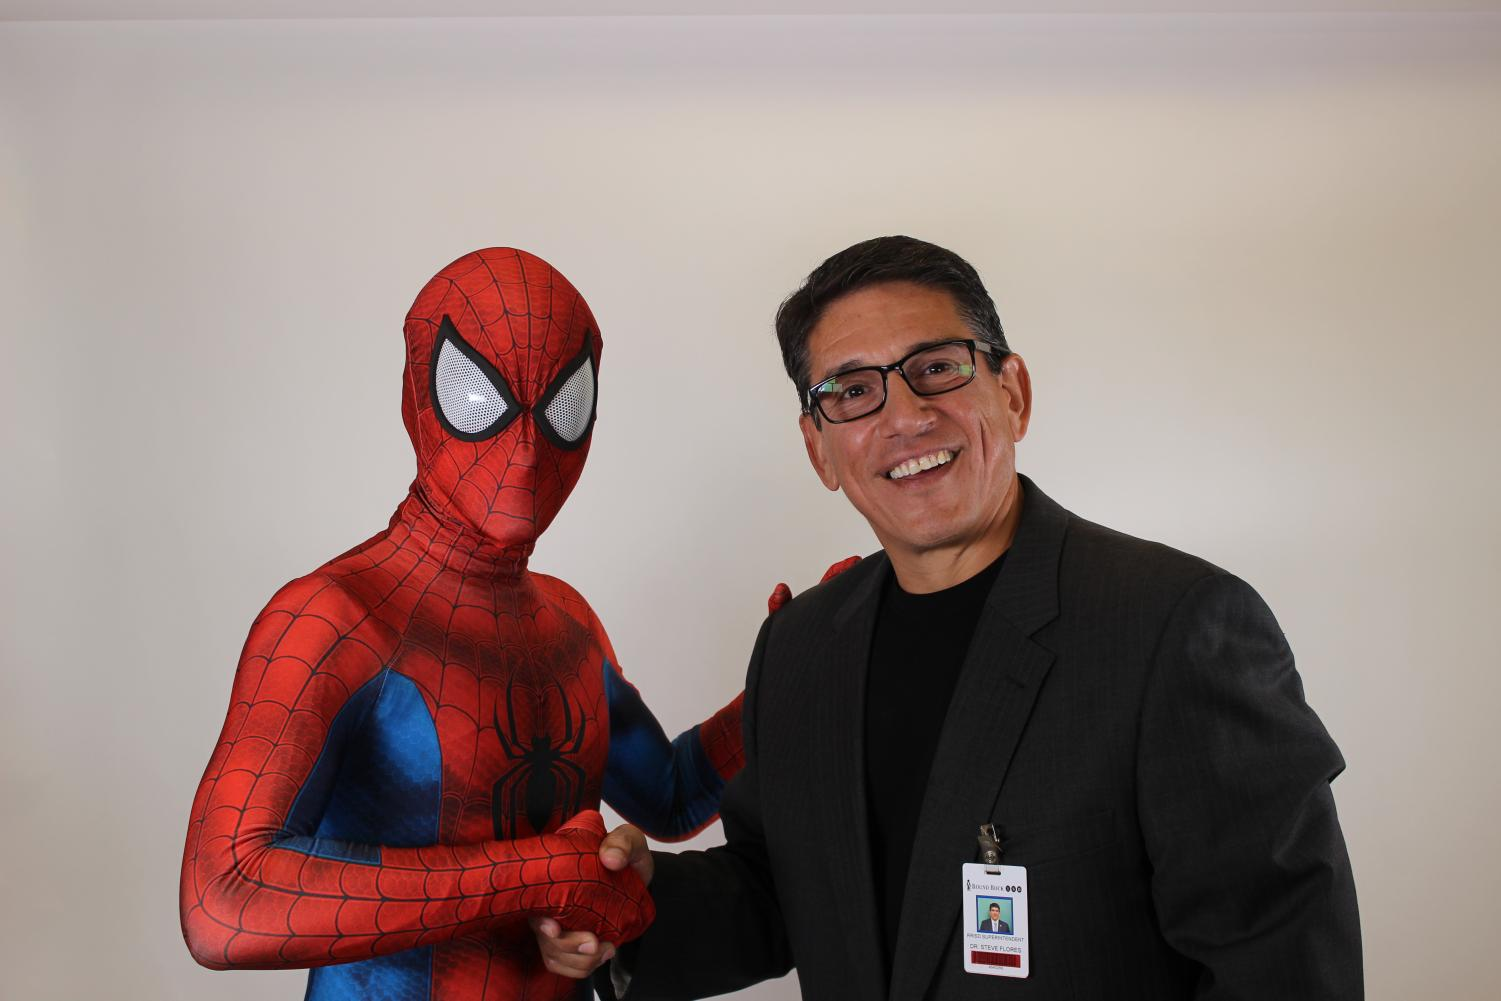 Dr.+Steve+Flores+shakes+hands+with+Spider-Man.